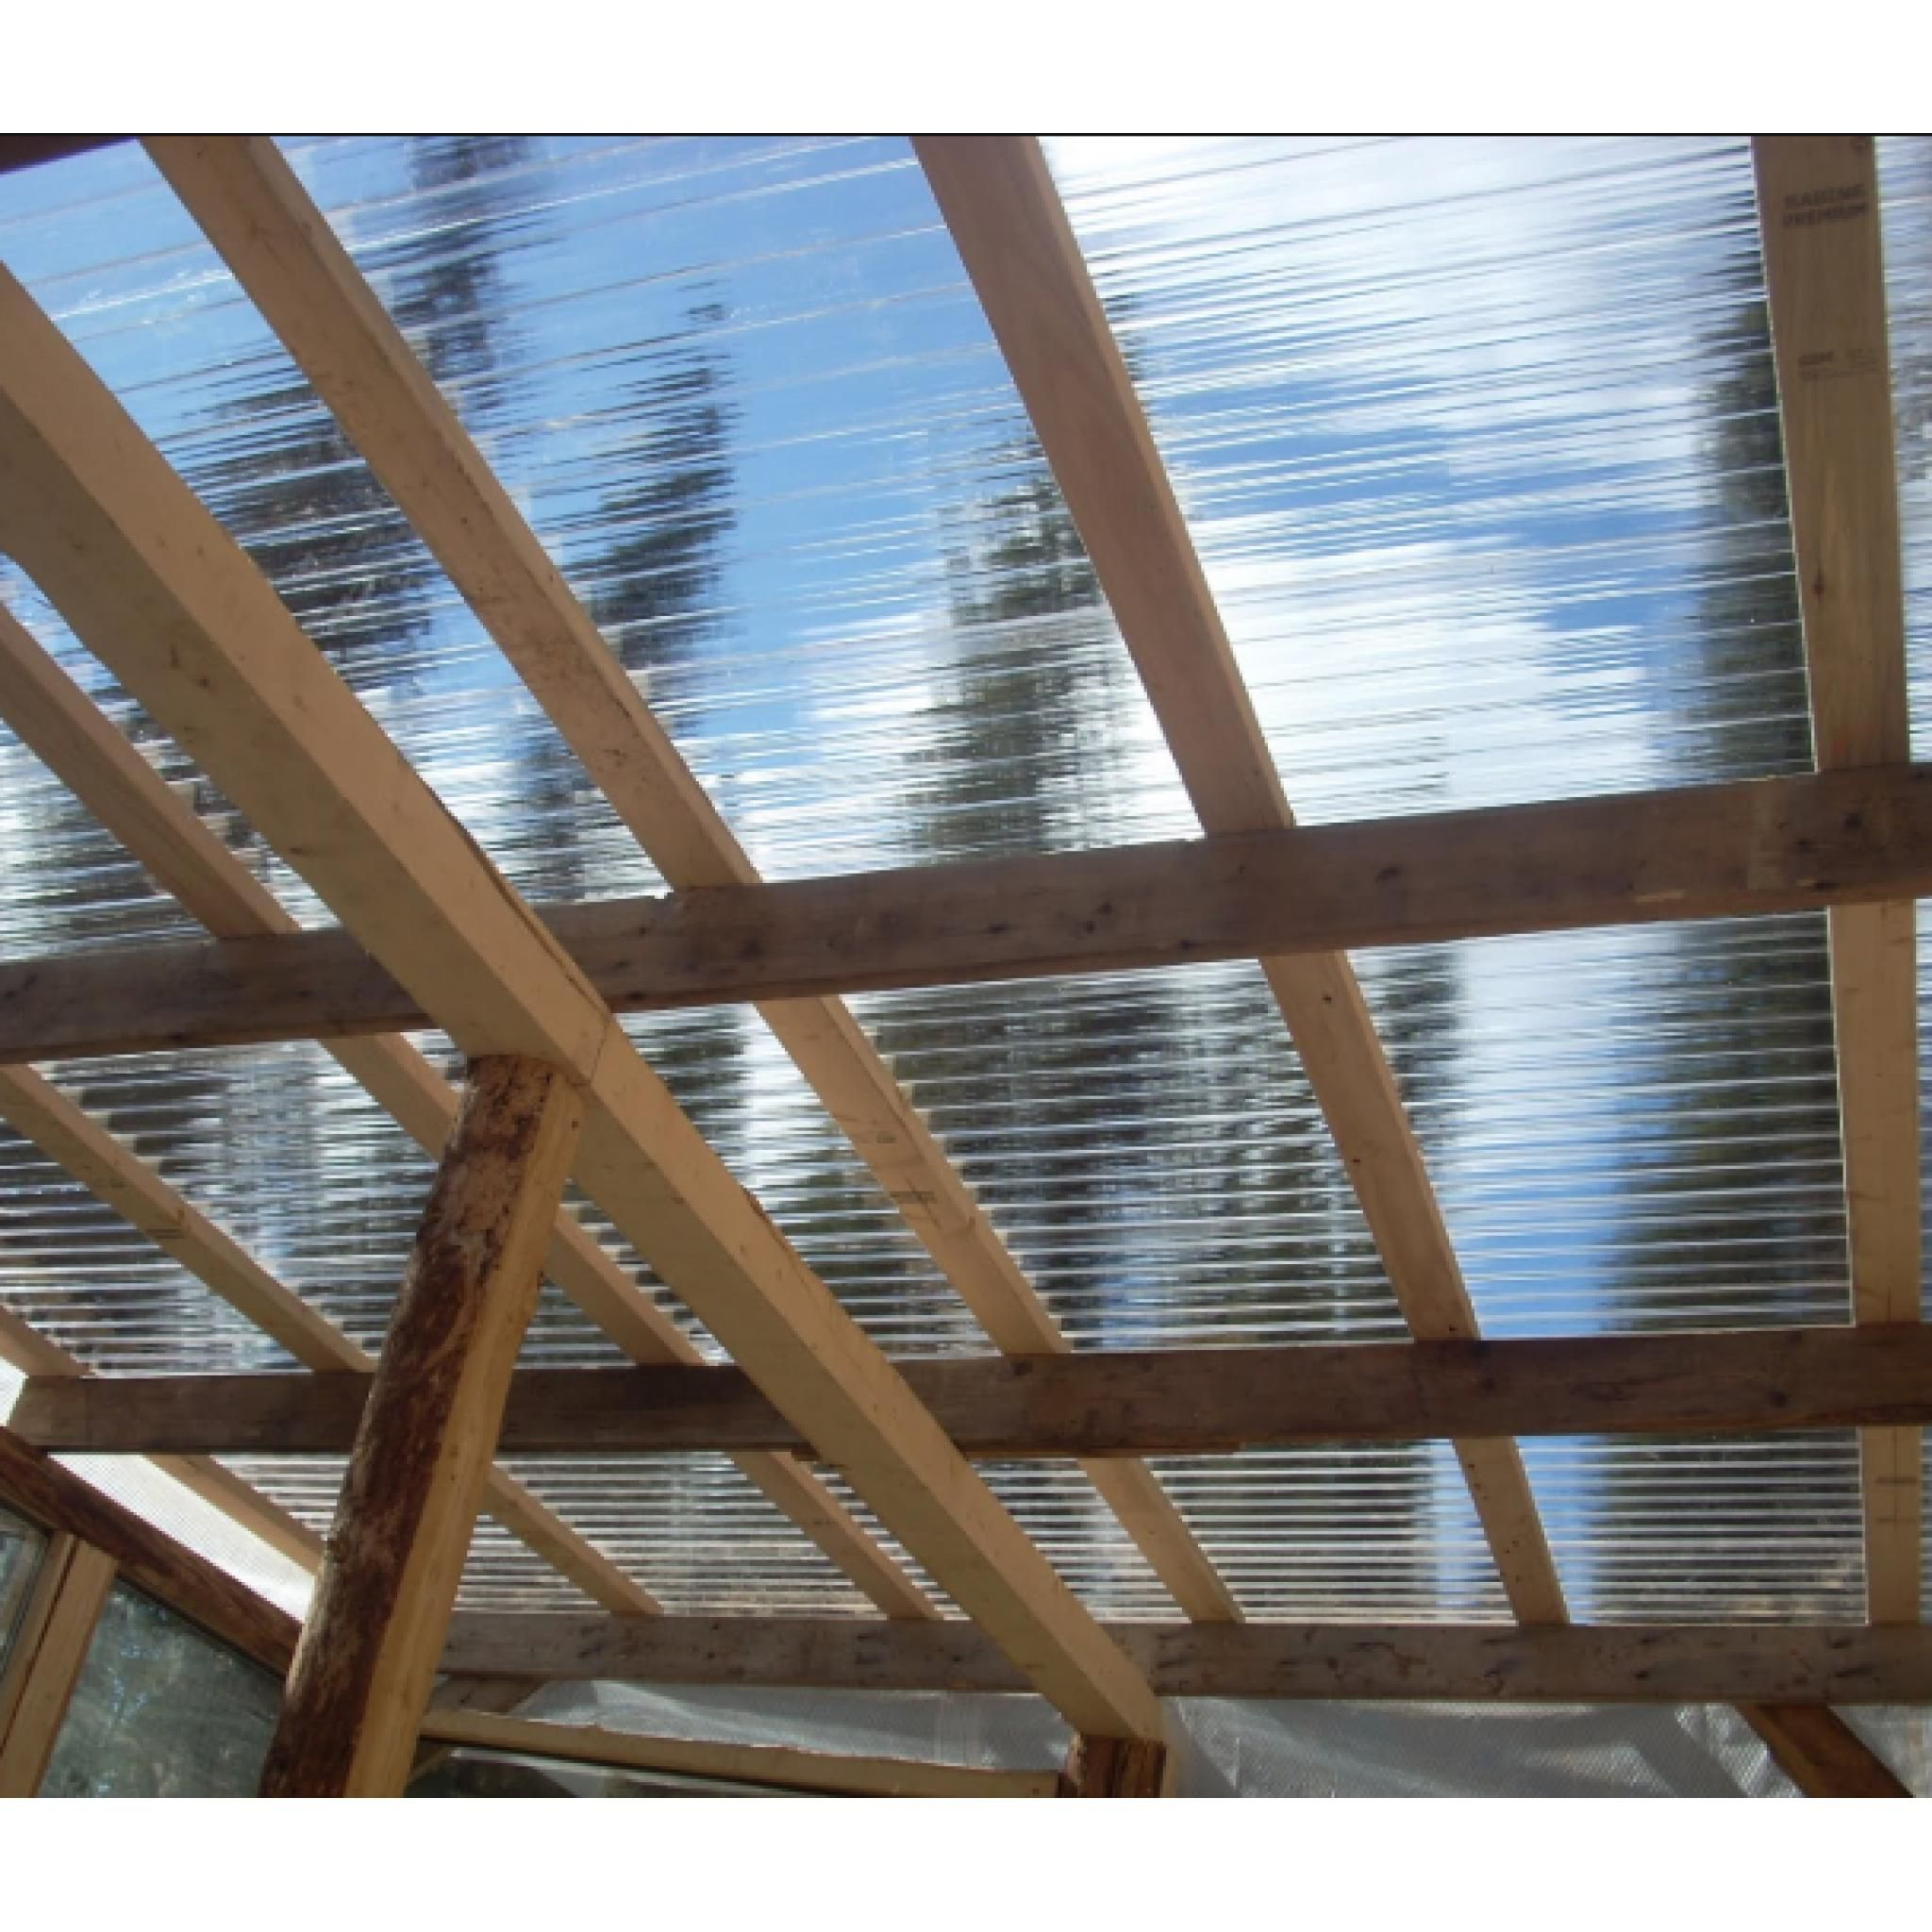 Pvc Corrugated Roof Sheet Clear 1 1mm Heavyweight 3 Profile In 2020 Corrugated Roofing Clear Roofing Sheets Roofing Sheets